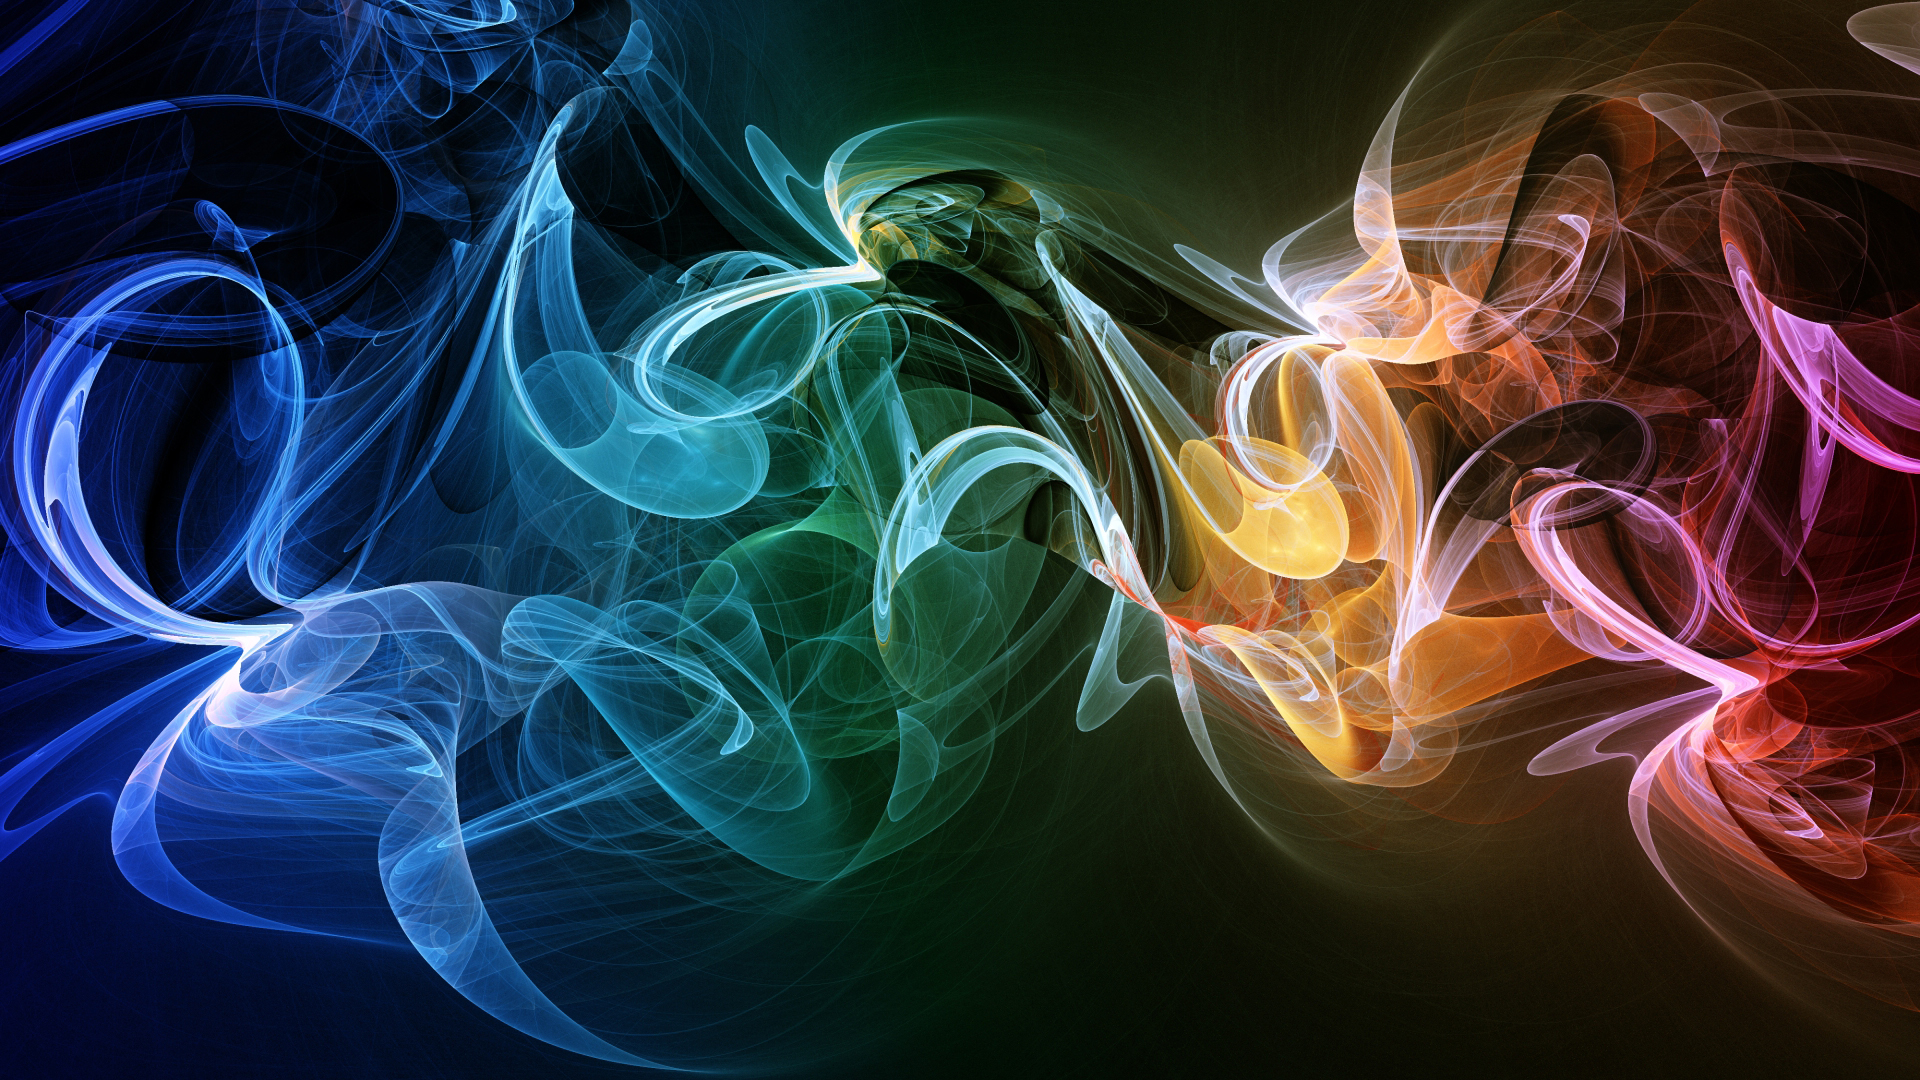 Abstract Wallpaper 1920X1080 fond ecran hd 1920x1080